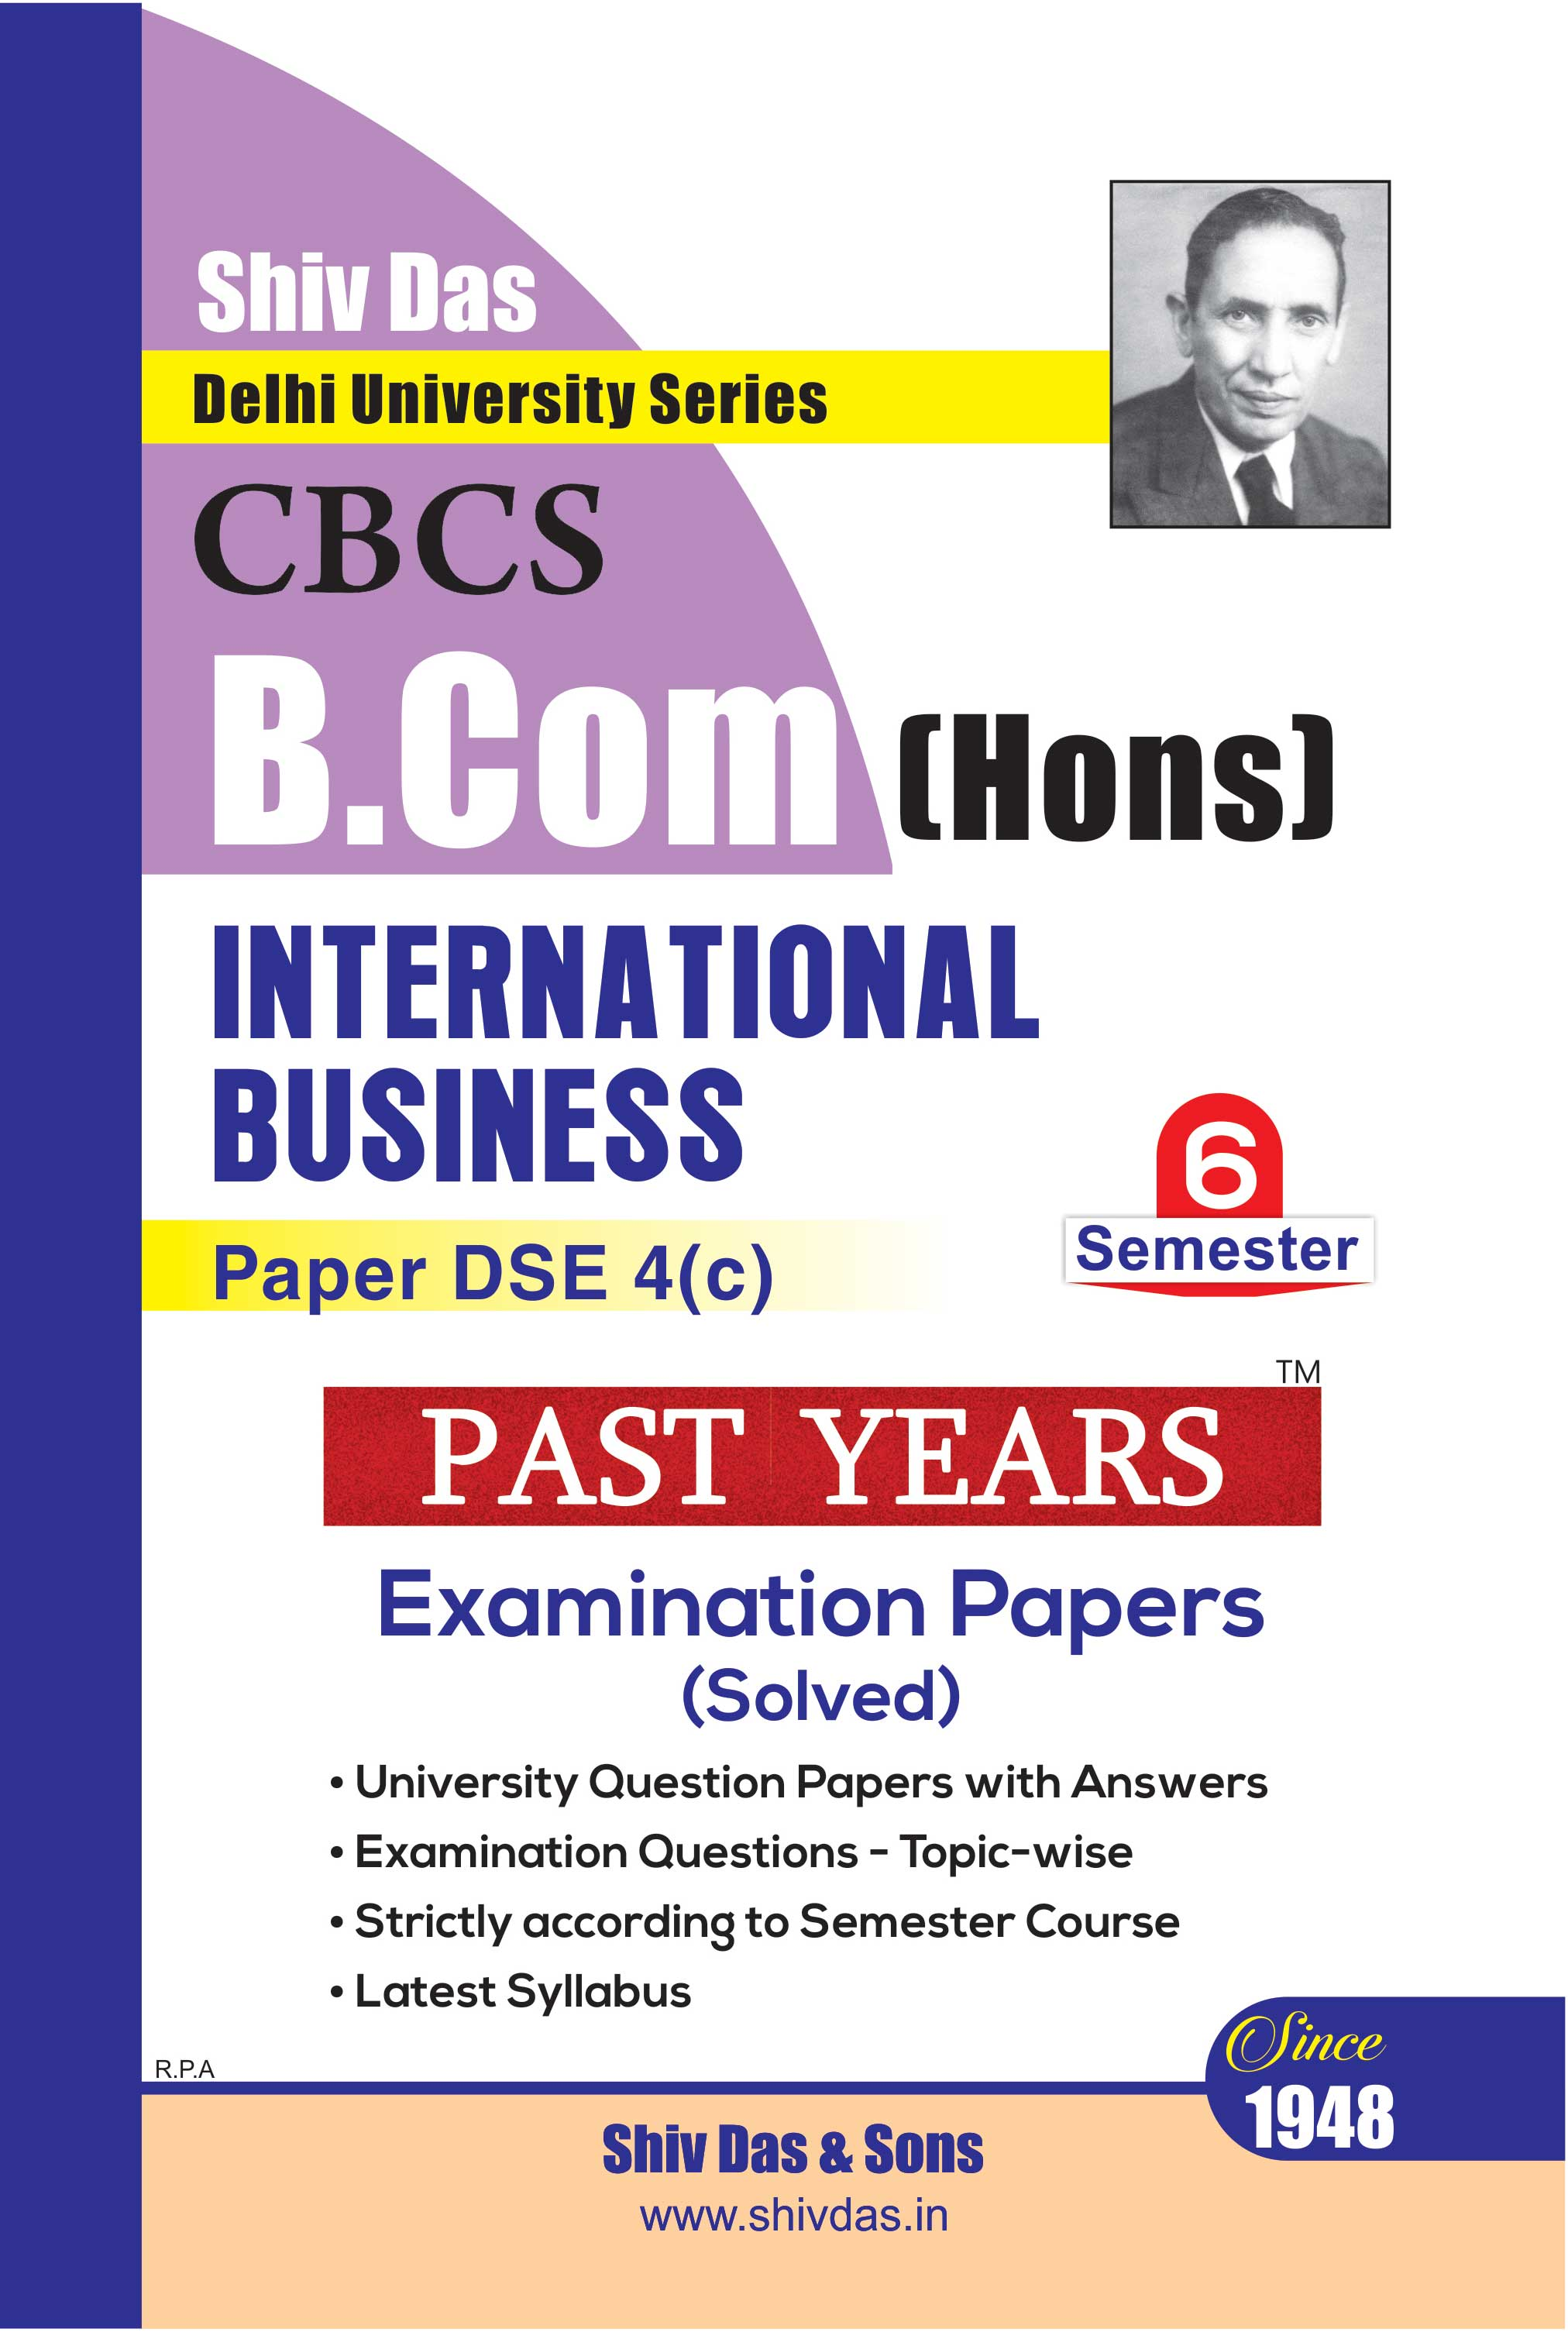 International Business for B.Com Hons  Semester 6 for Delhi University by Shiv Das